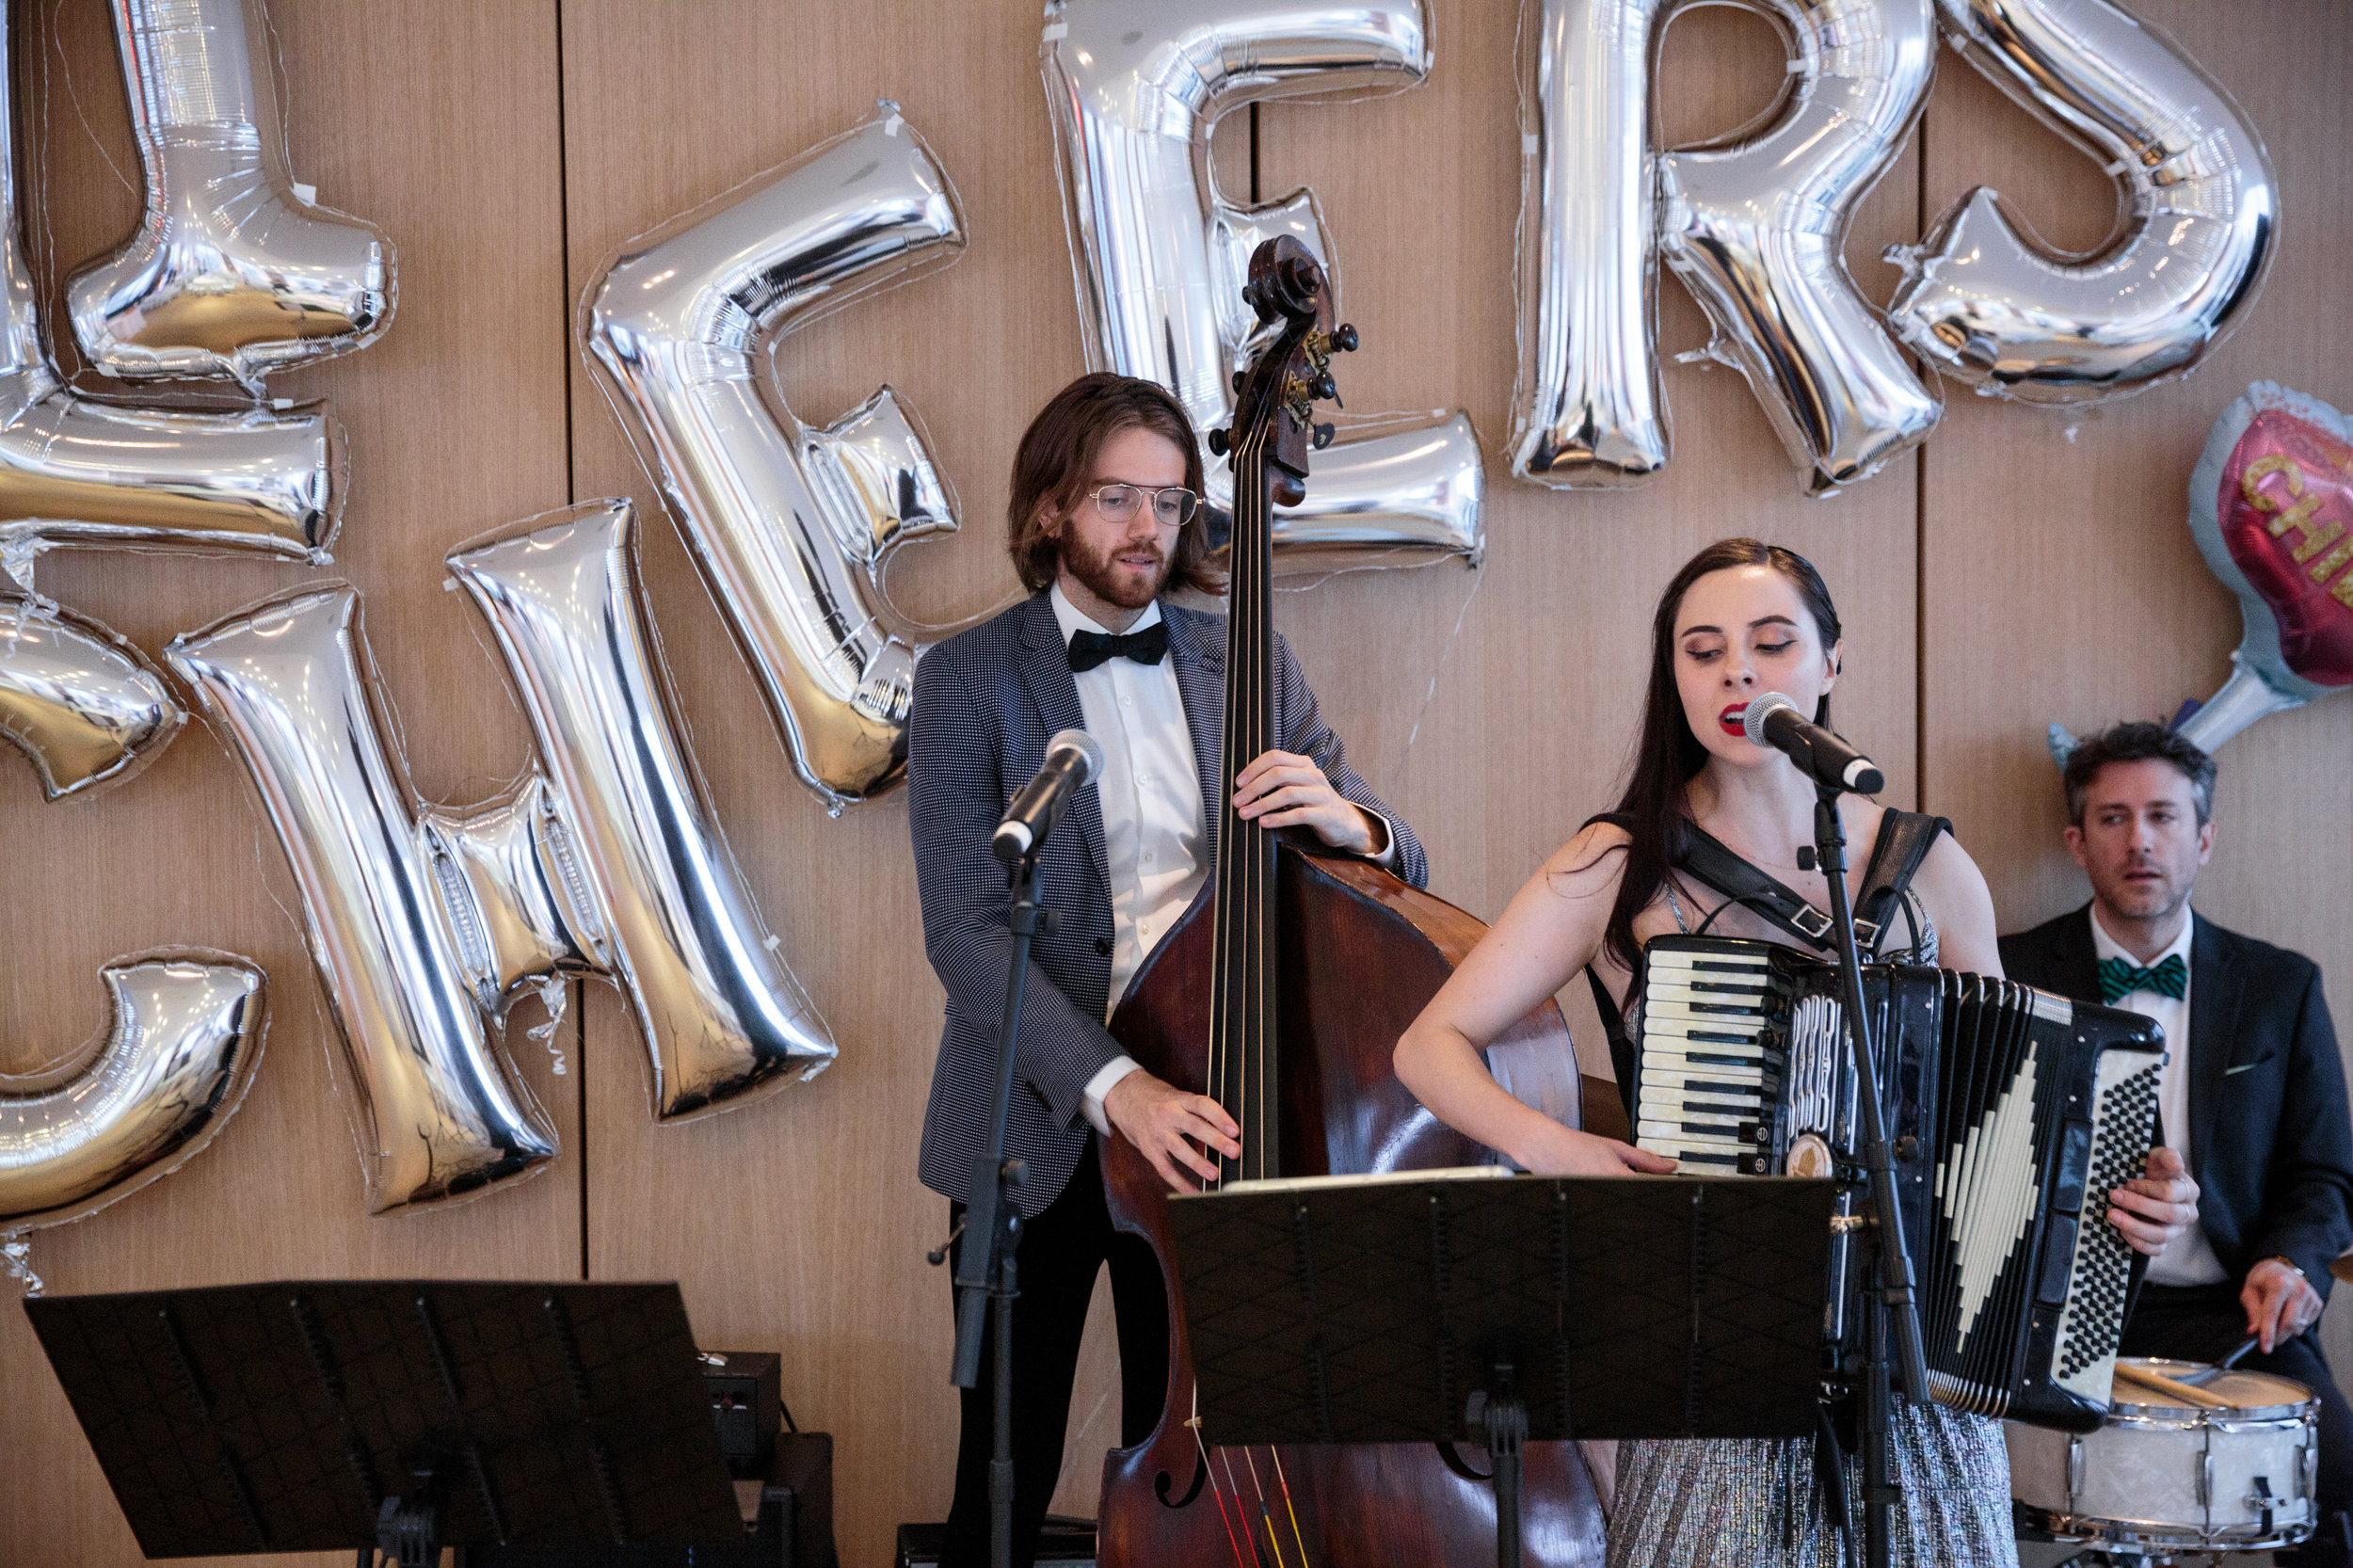 Talented jazz group plays for guests throughout dinner